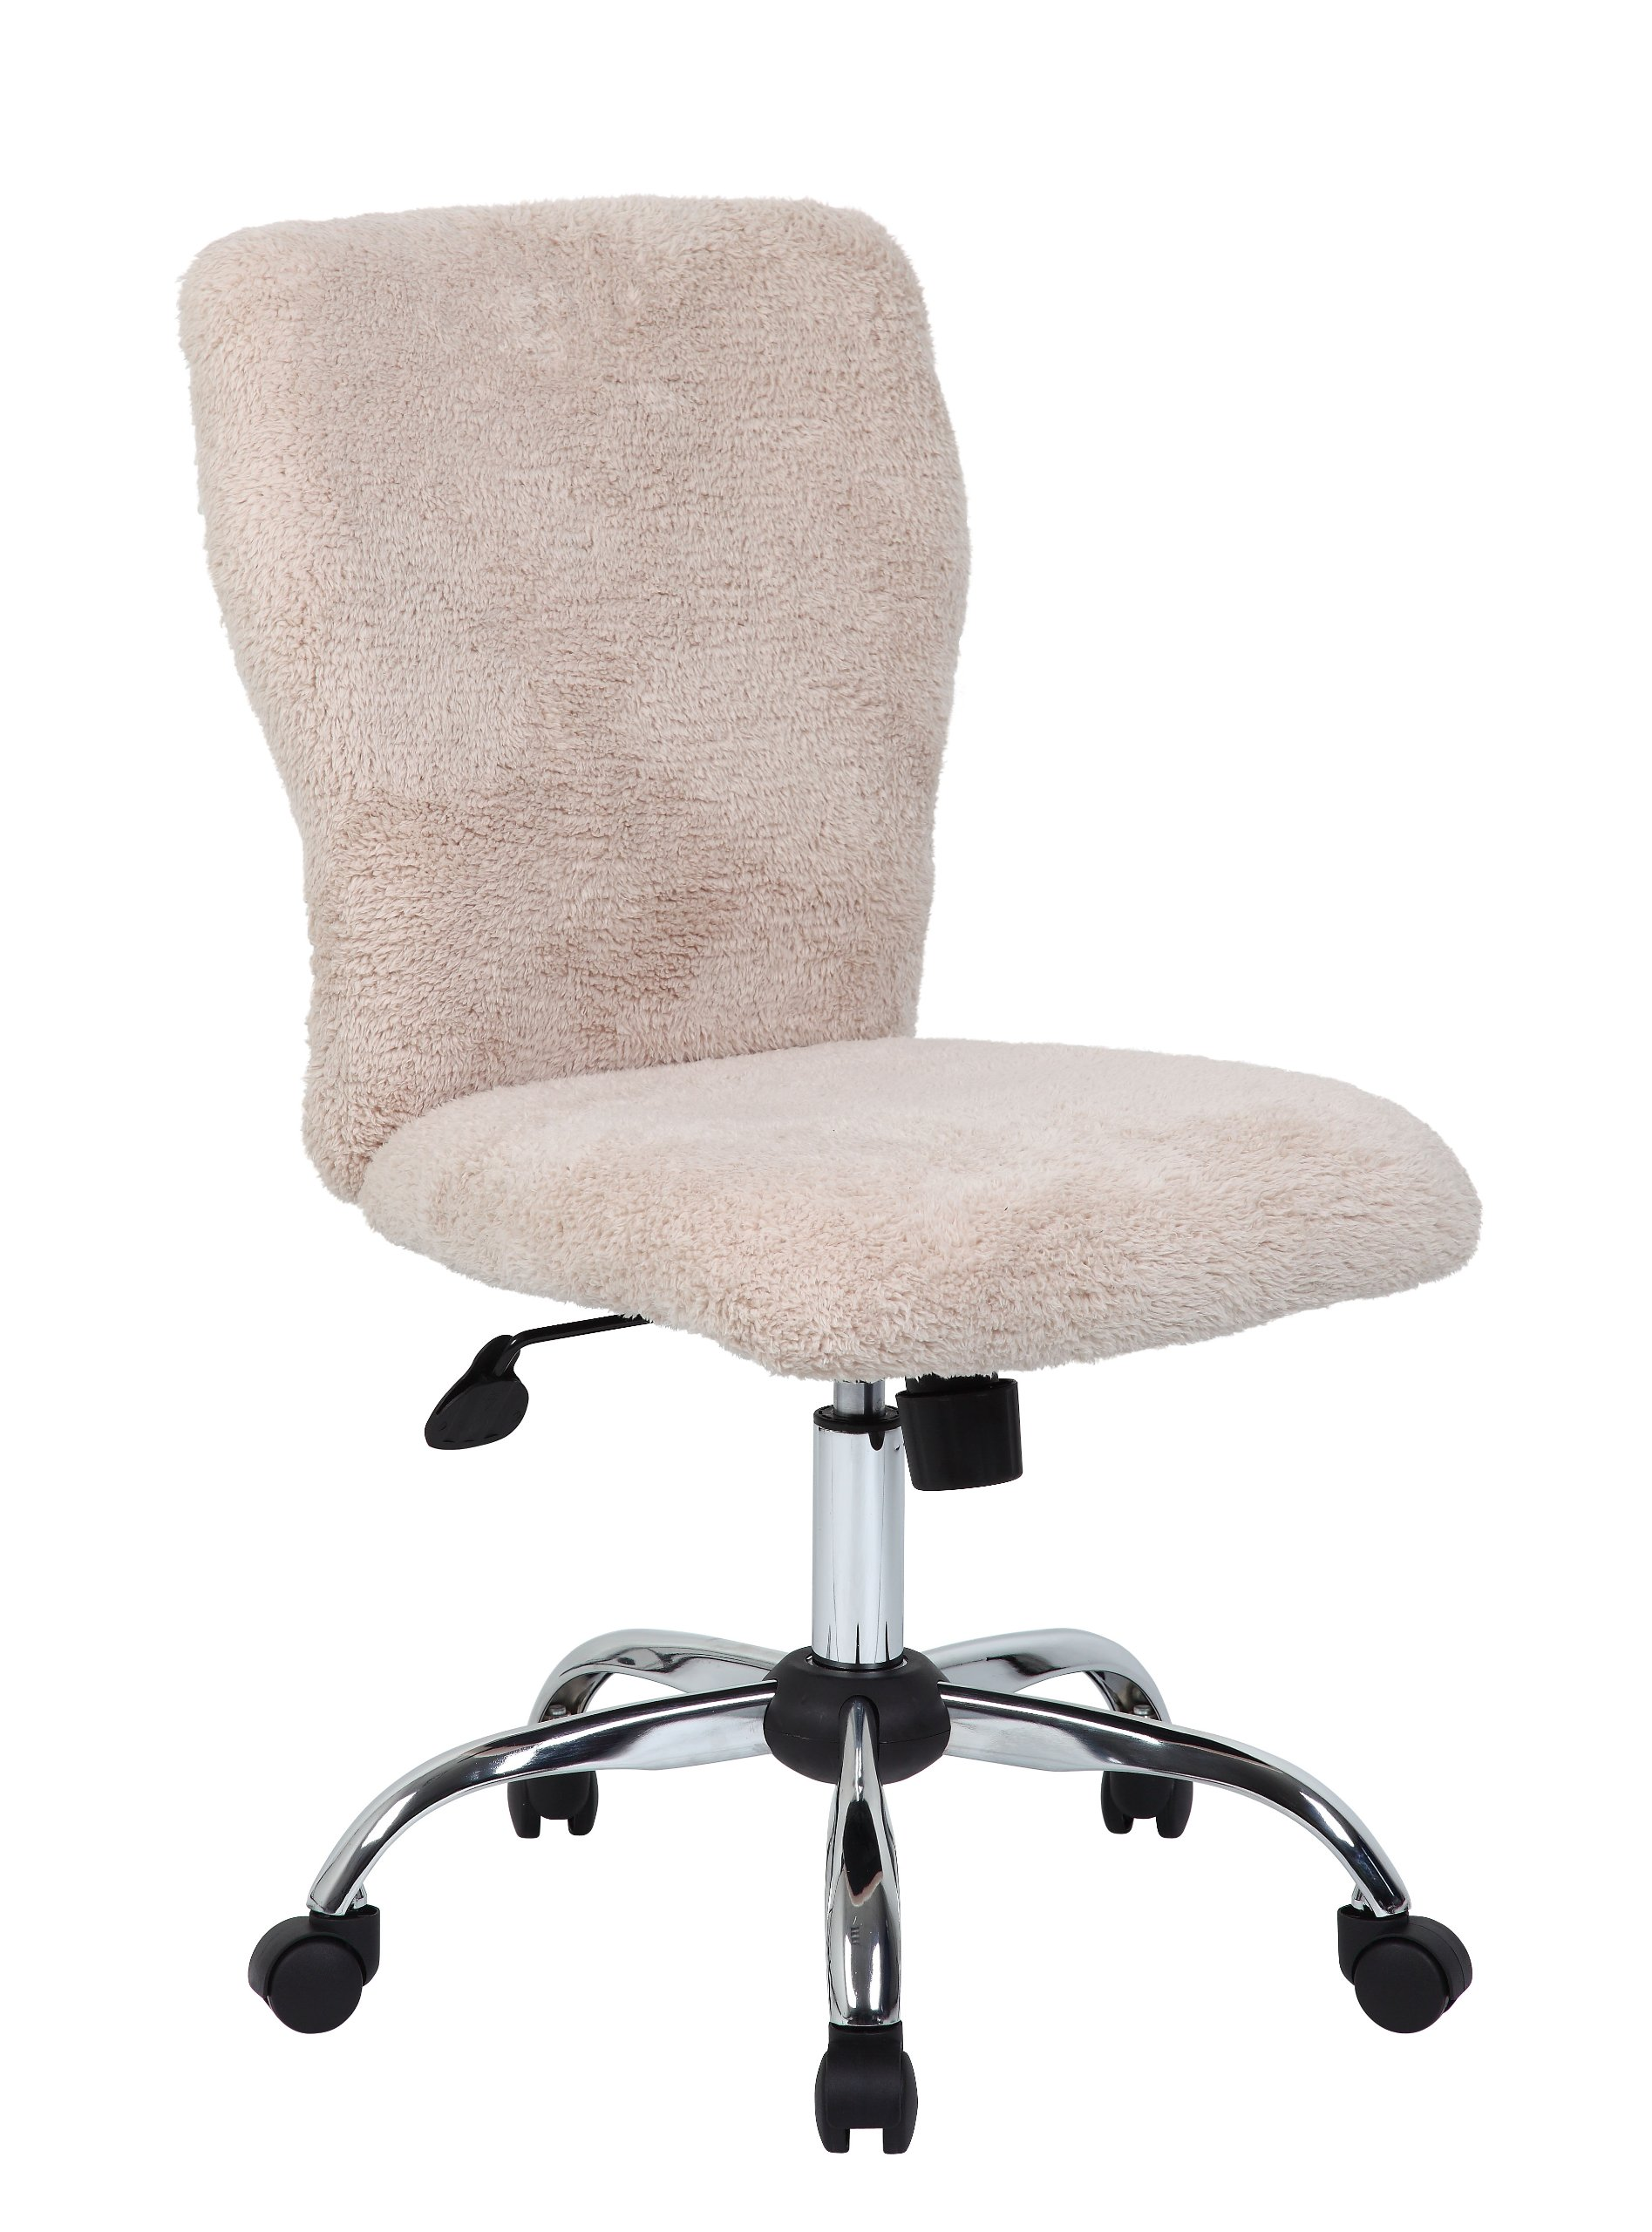 Boss Office Products B220-FCRM Tiffany Fur Make-Up Modern Office Chair in Cream by Boss Office Products